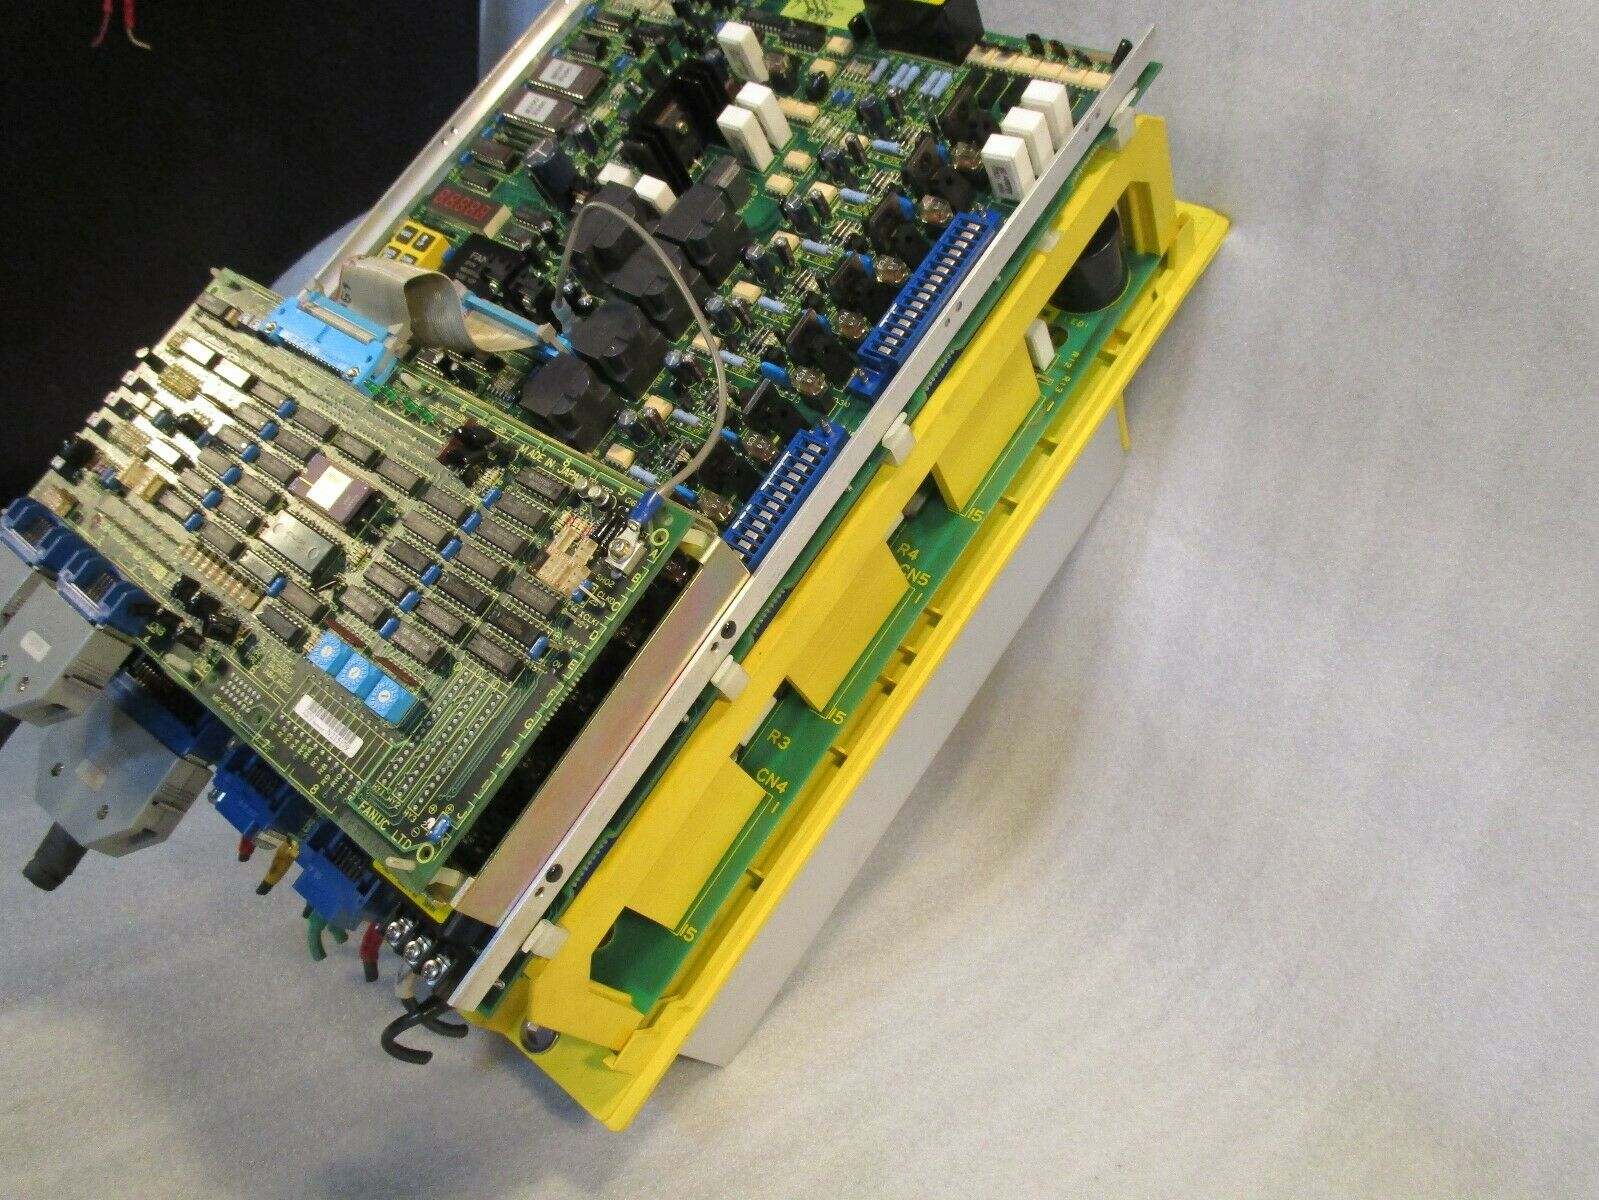 Fanuc Spindle Drive Spindle Amp A20B-1003-0010/15b A20B-0008-0242 /0203A -0020